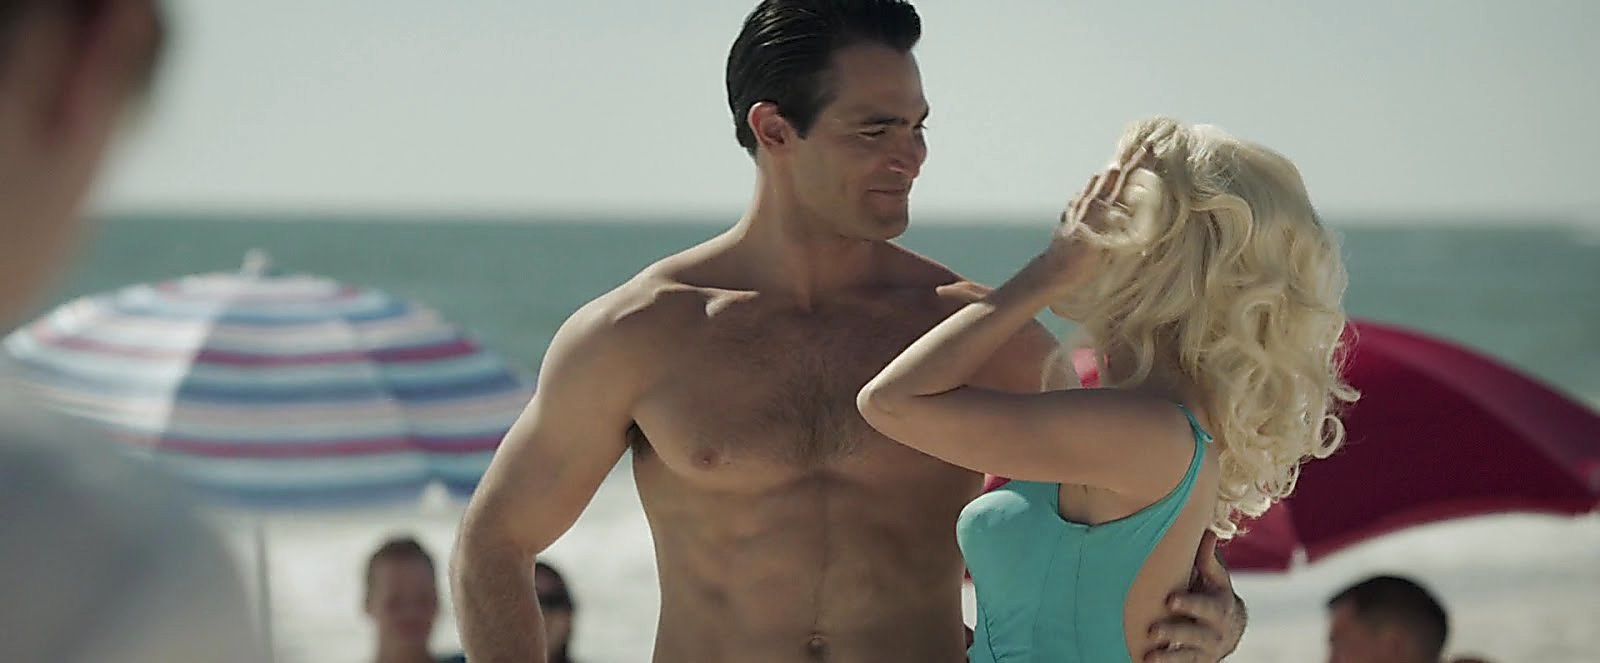 Tyler Hoechlin sexy shirtless scene January 15, 2019, 1pm